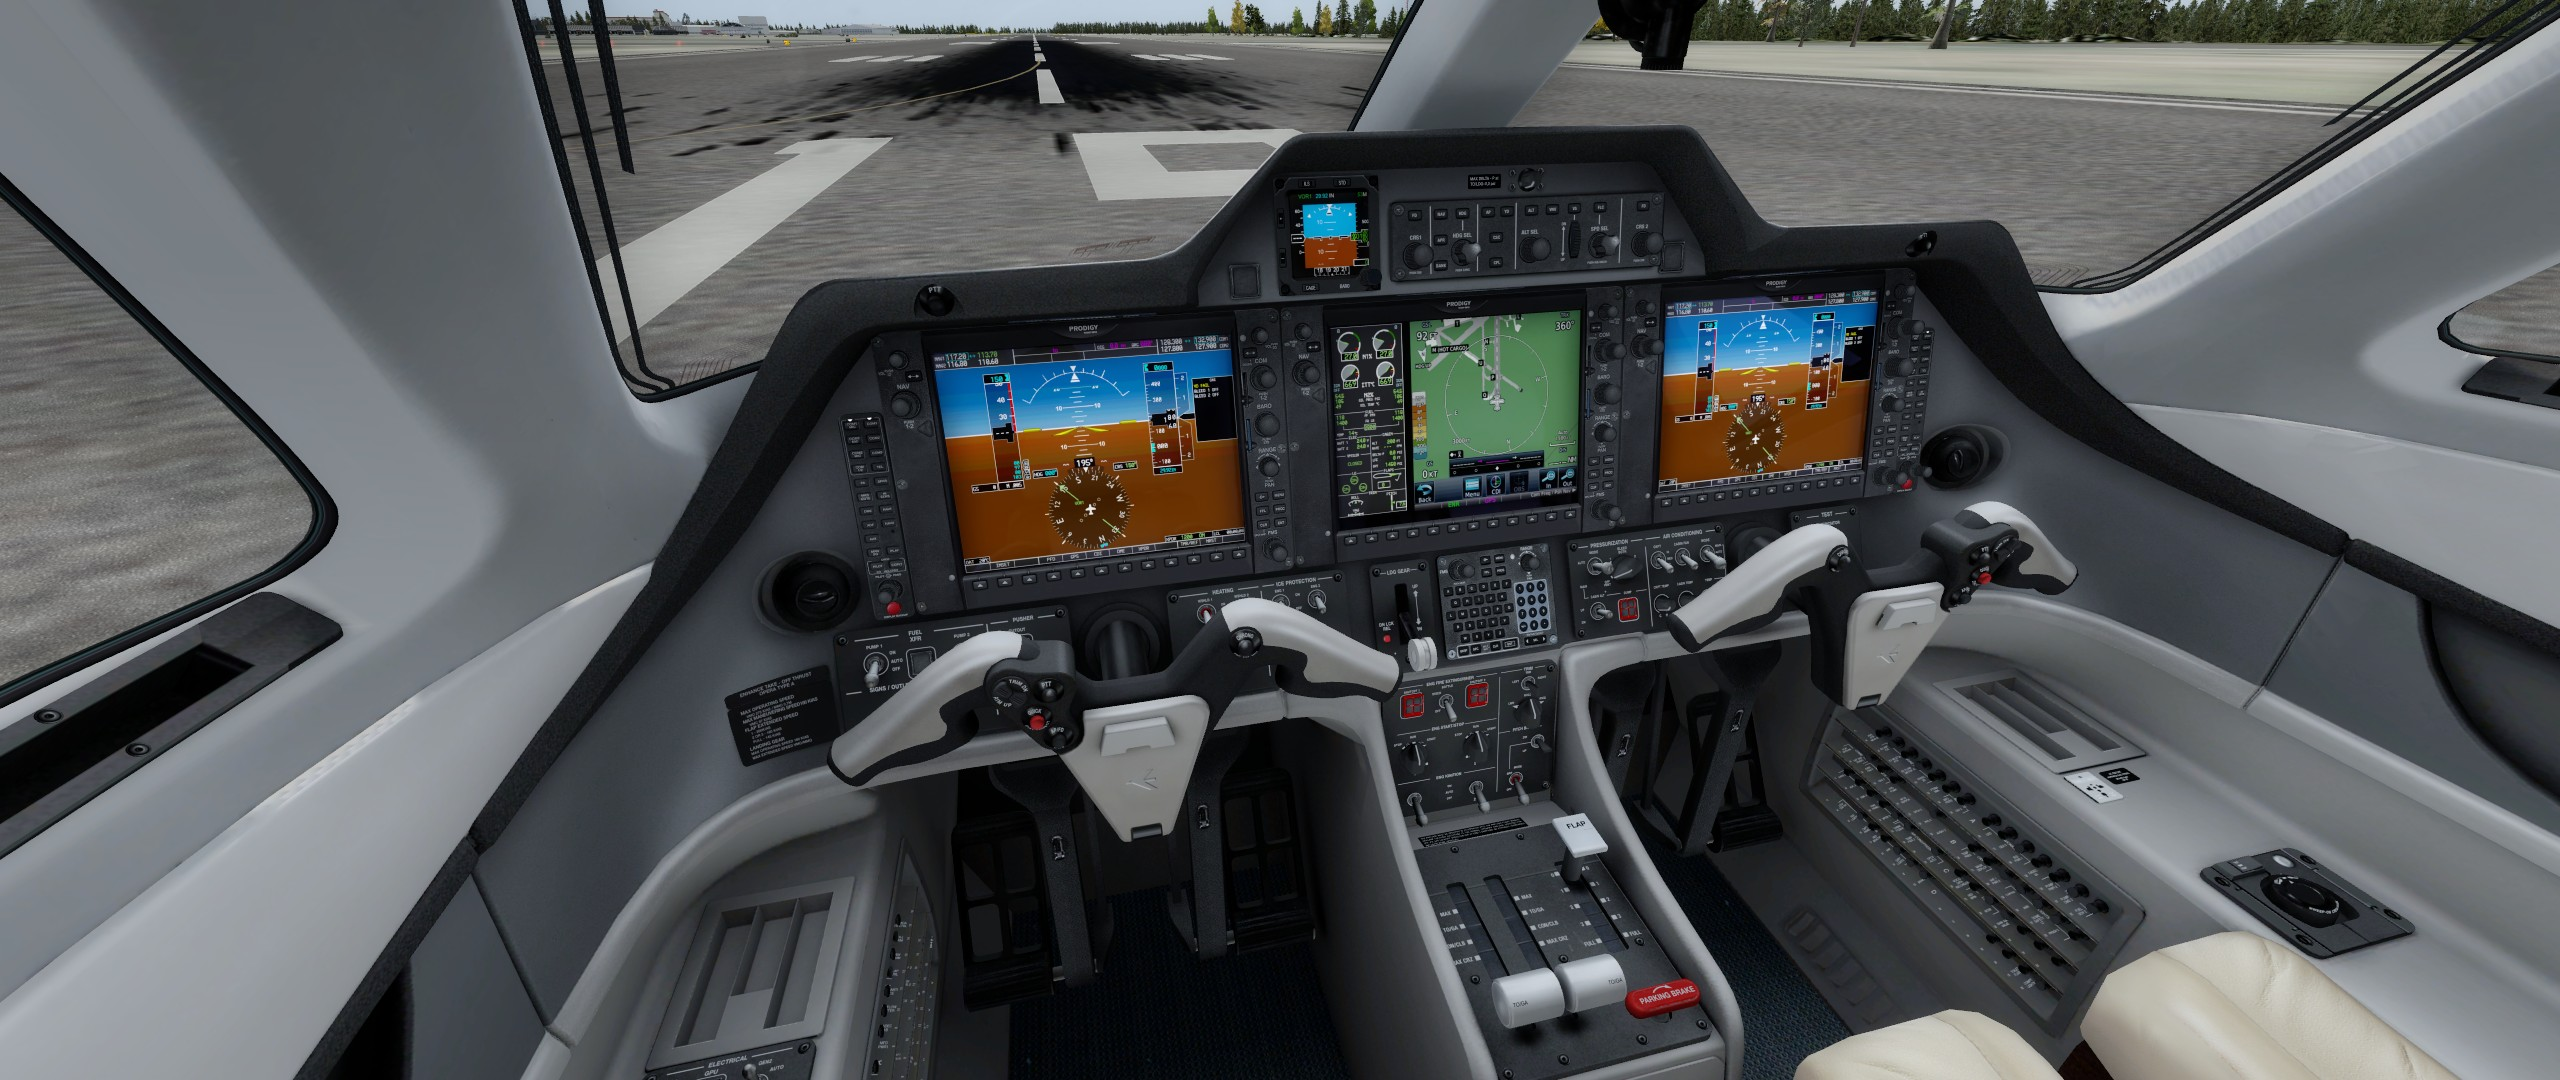 GTN in Phenom 100 - SimForums com Discussion